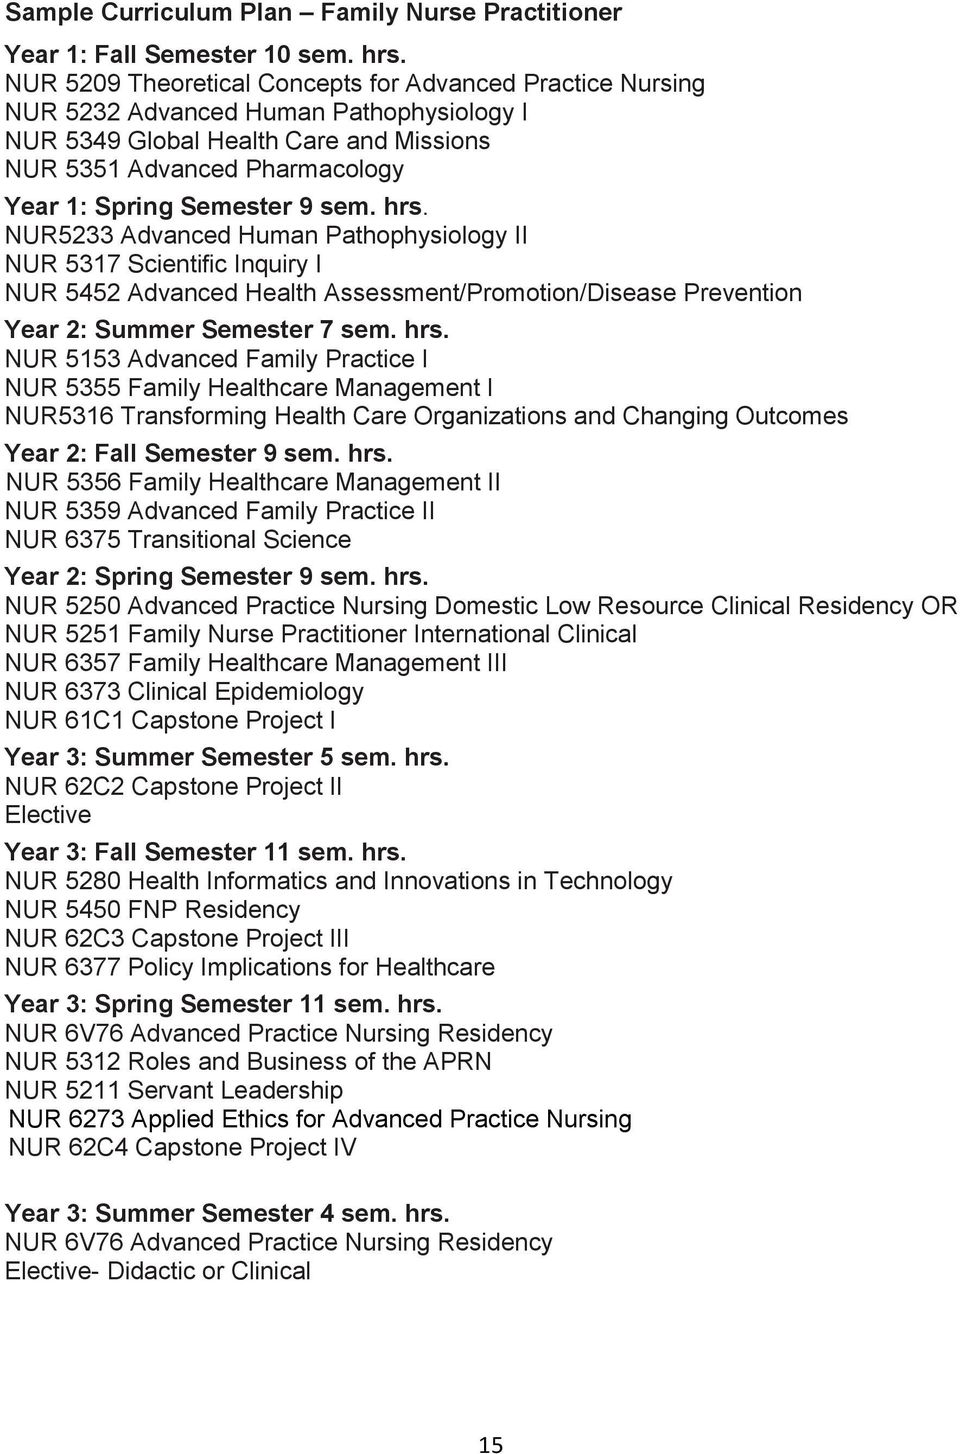 sem. hrs. NUR5233 Advanced Human Pathophysiology II NUR 5317 Scientific Inquiry I NUR 5452 Advanced Health Assessment/Promotion/Disease Prevention Year 2: Summer Semester 7 sem. hrs. NUR 5153 Advanced Family Practice I NUR 5355 Family Healthcare Management I NUR5316 Transforming Health Care Organizations and Changing Outcomes Year 2: Fall Semester 9 sem.